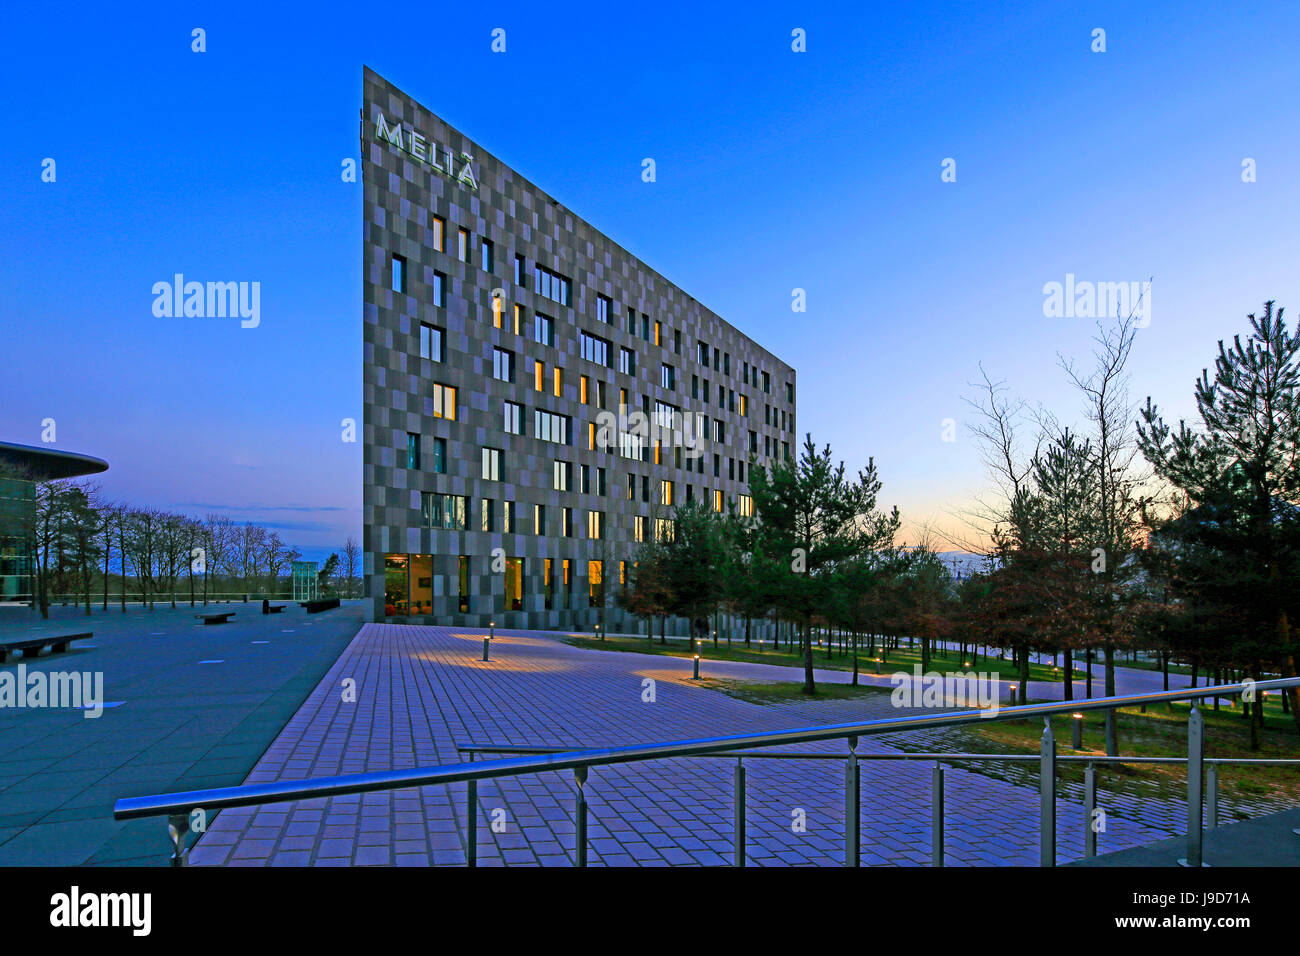 Melia Hotel on Kirchberg in Luxembourg City, Grand Duchy of Luxembourg, Europe - Stock Image